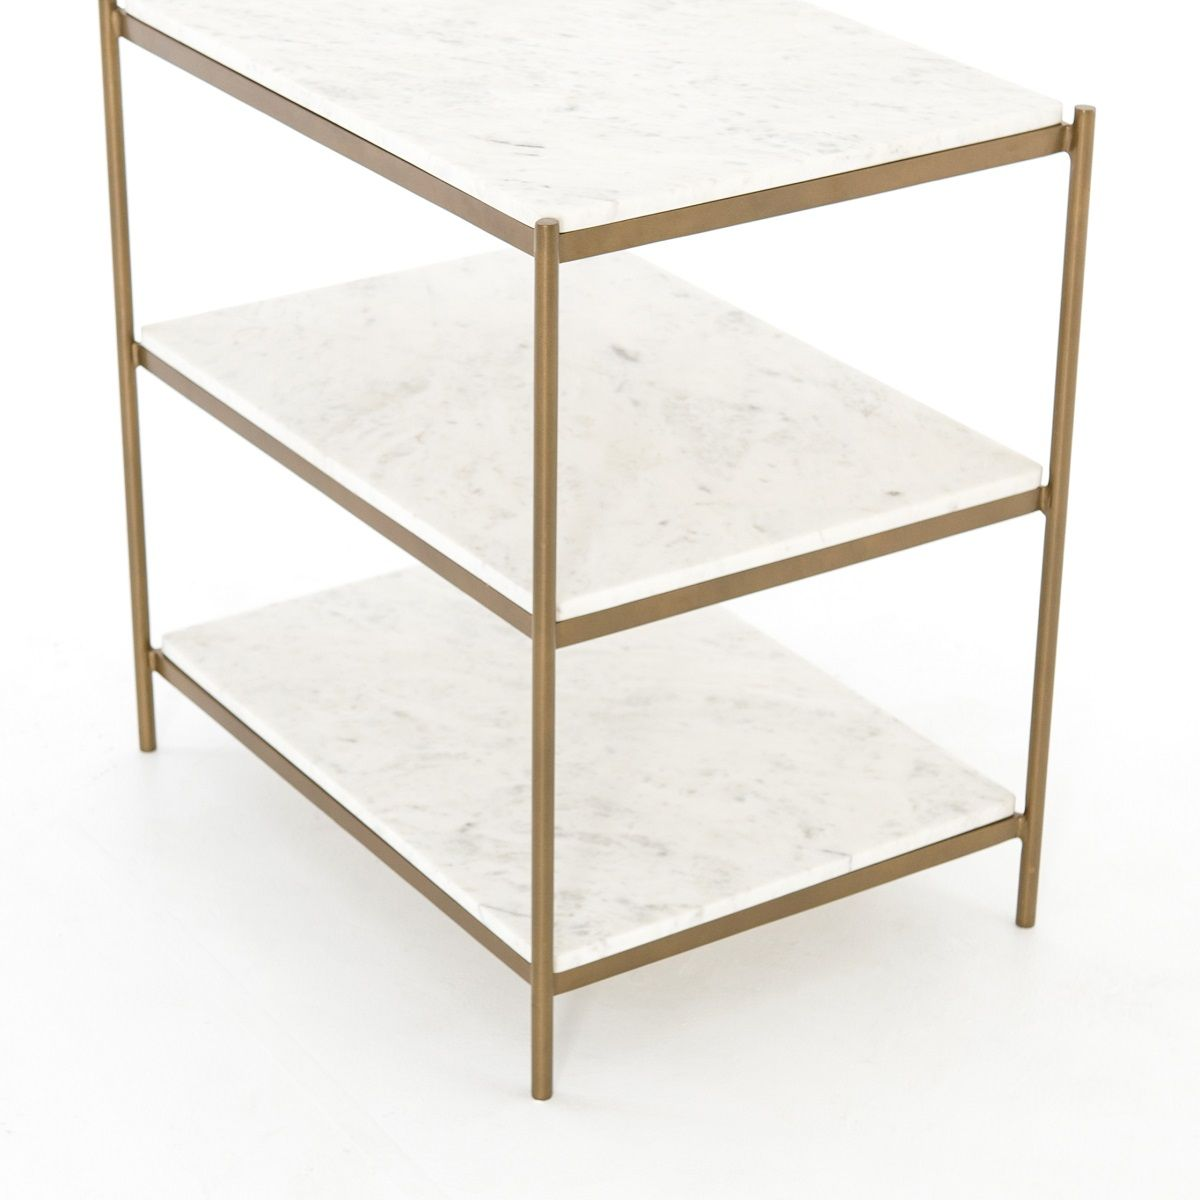 Three Tier White Marble End Table Bedside Table Brass Or Gunmetal Finish The Design Tap